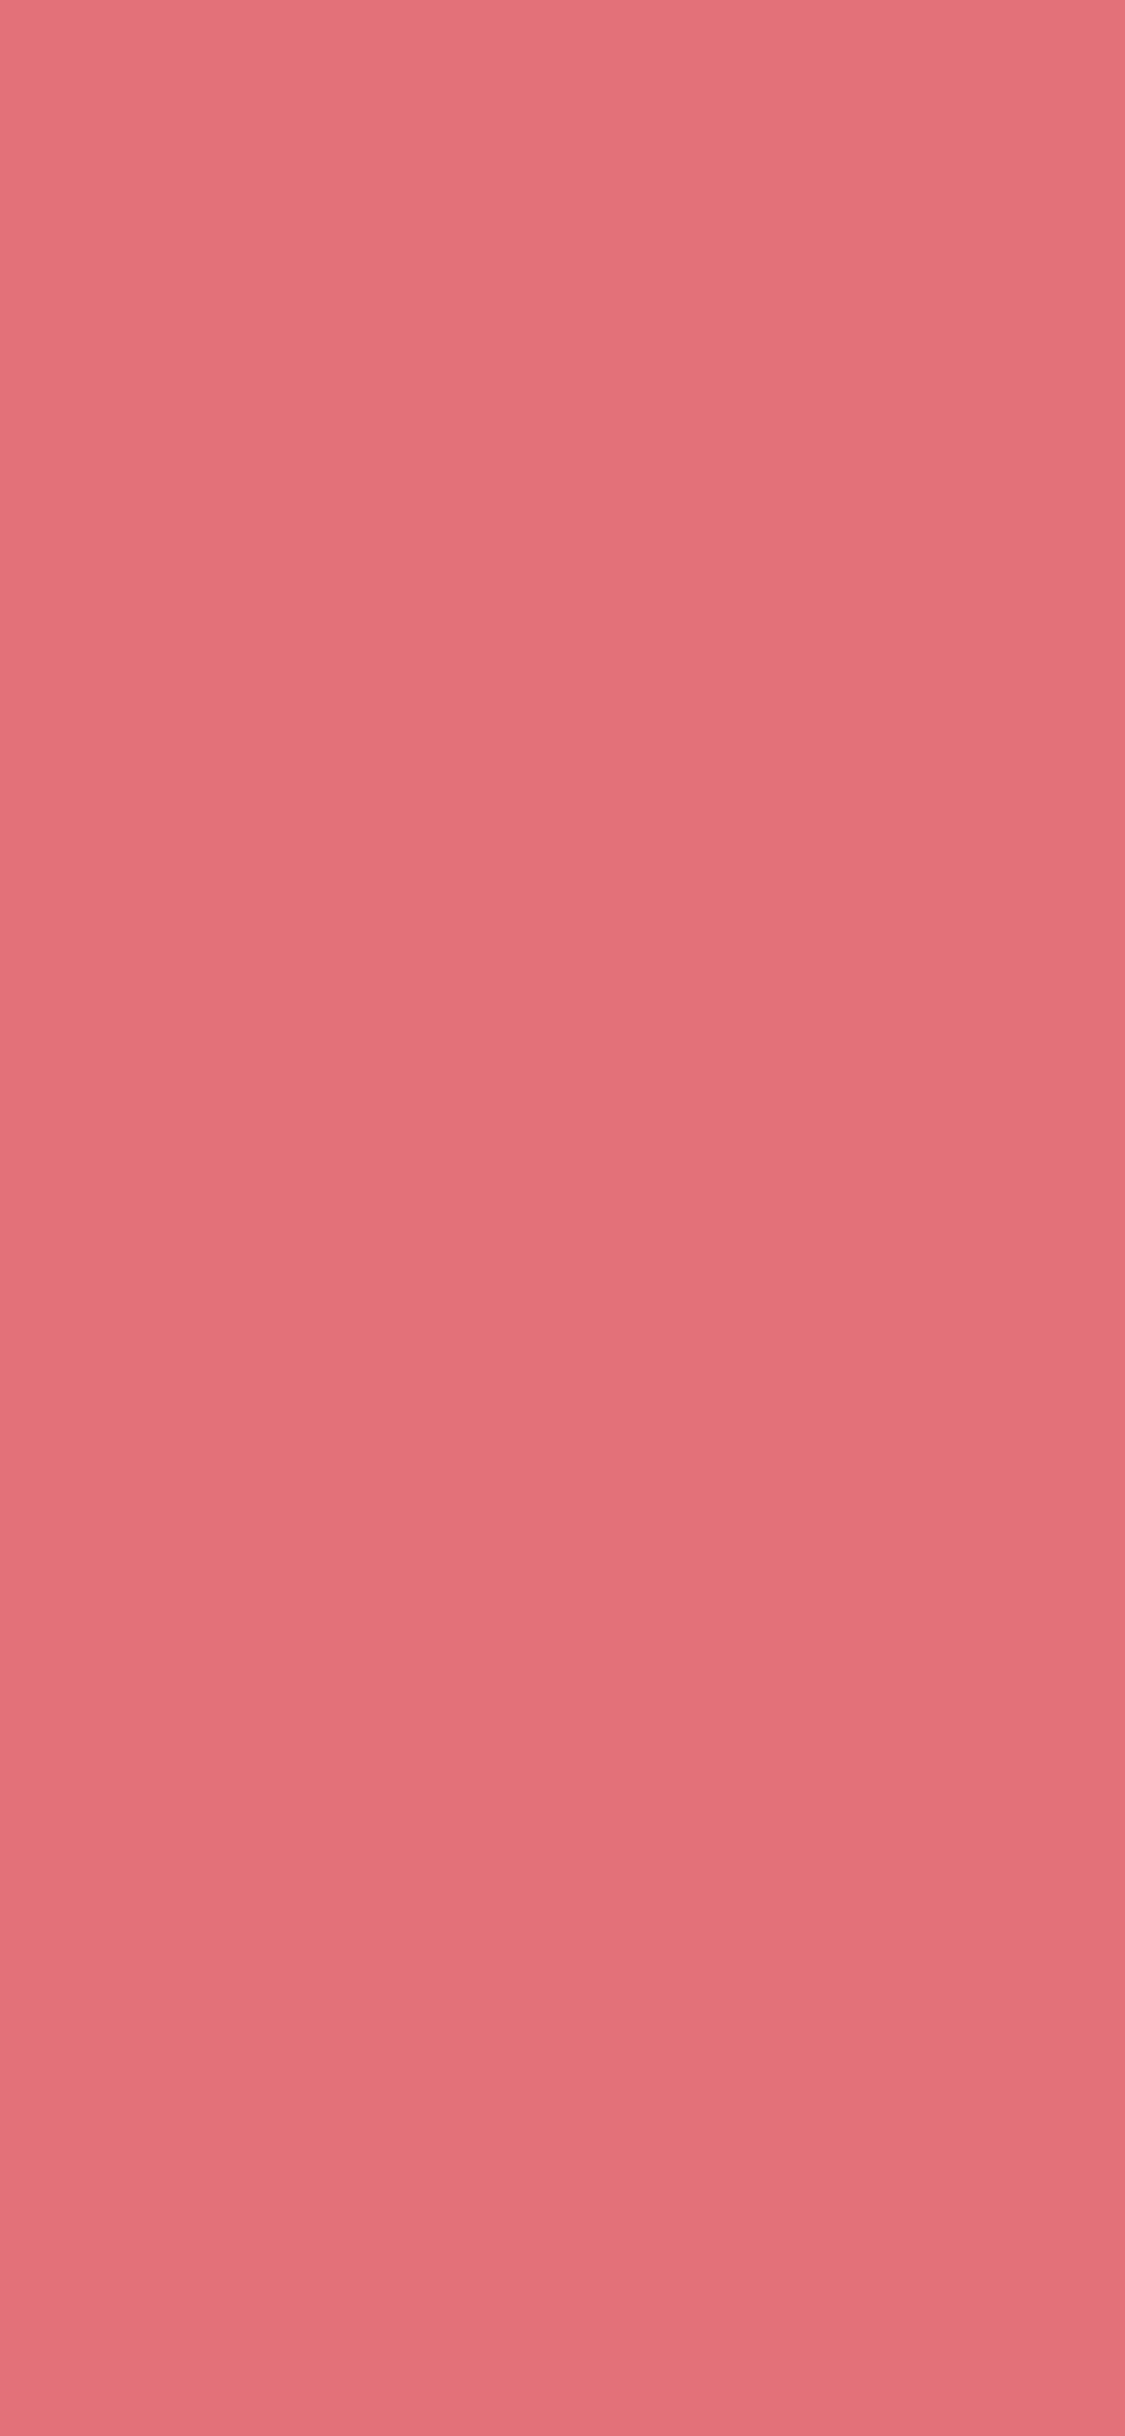 1125x2436 Candy Pink Solid Color Background